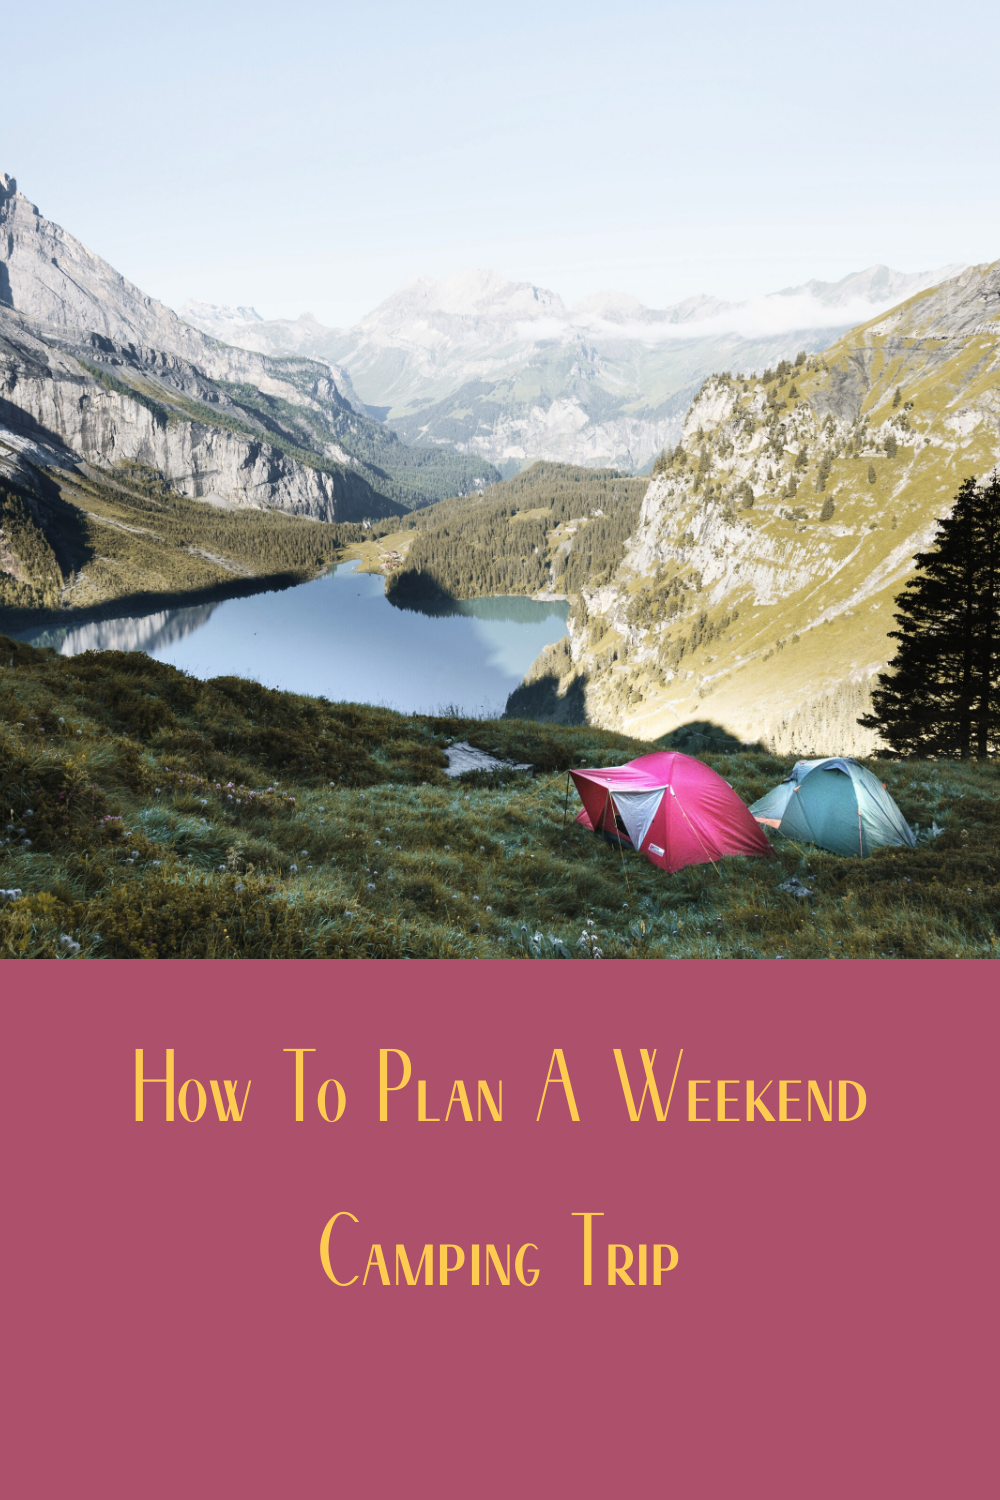 5 Point Checklist For A 2 Night Camping Trip Weekend Camping Trip Trip Outdoors Adventure